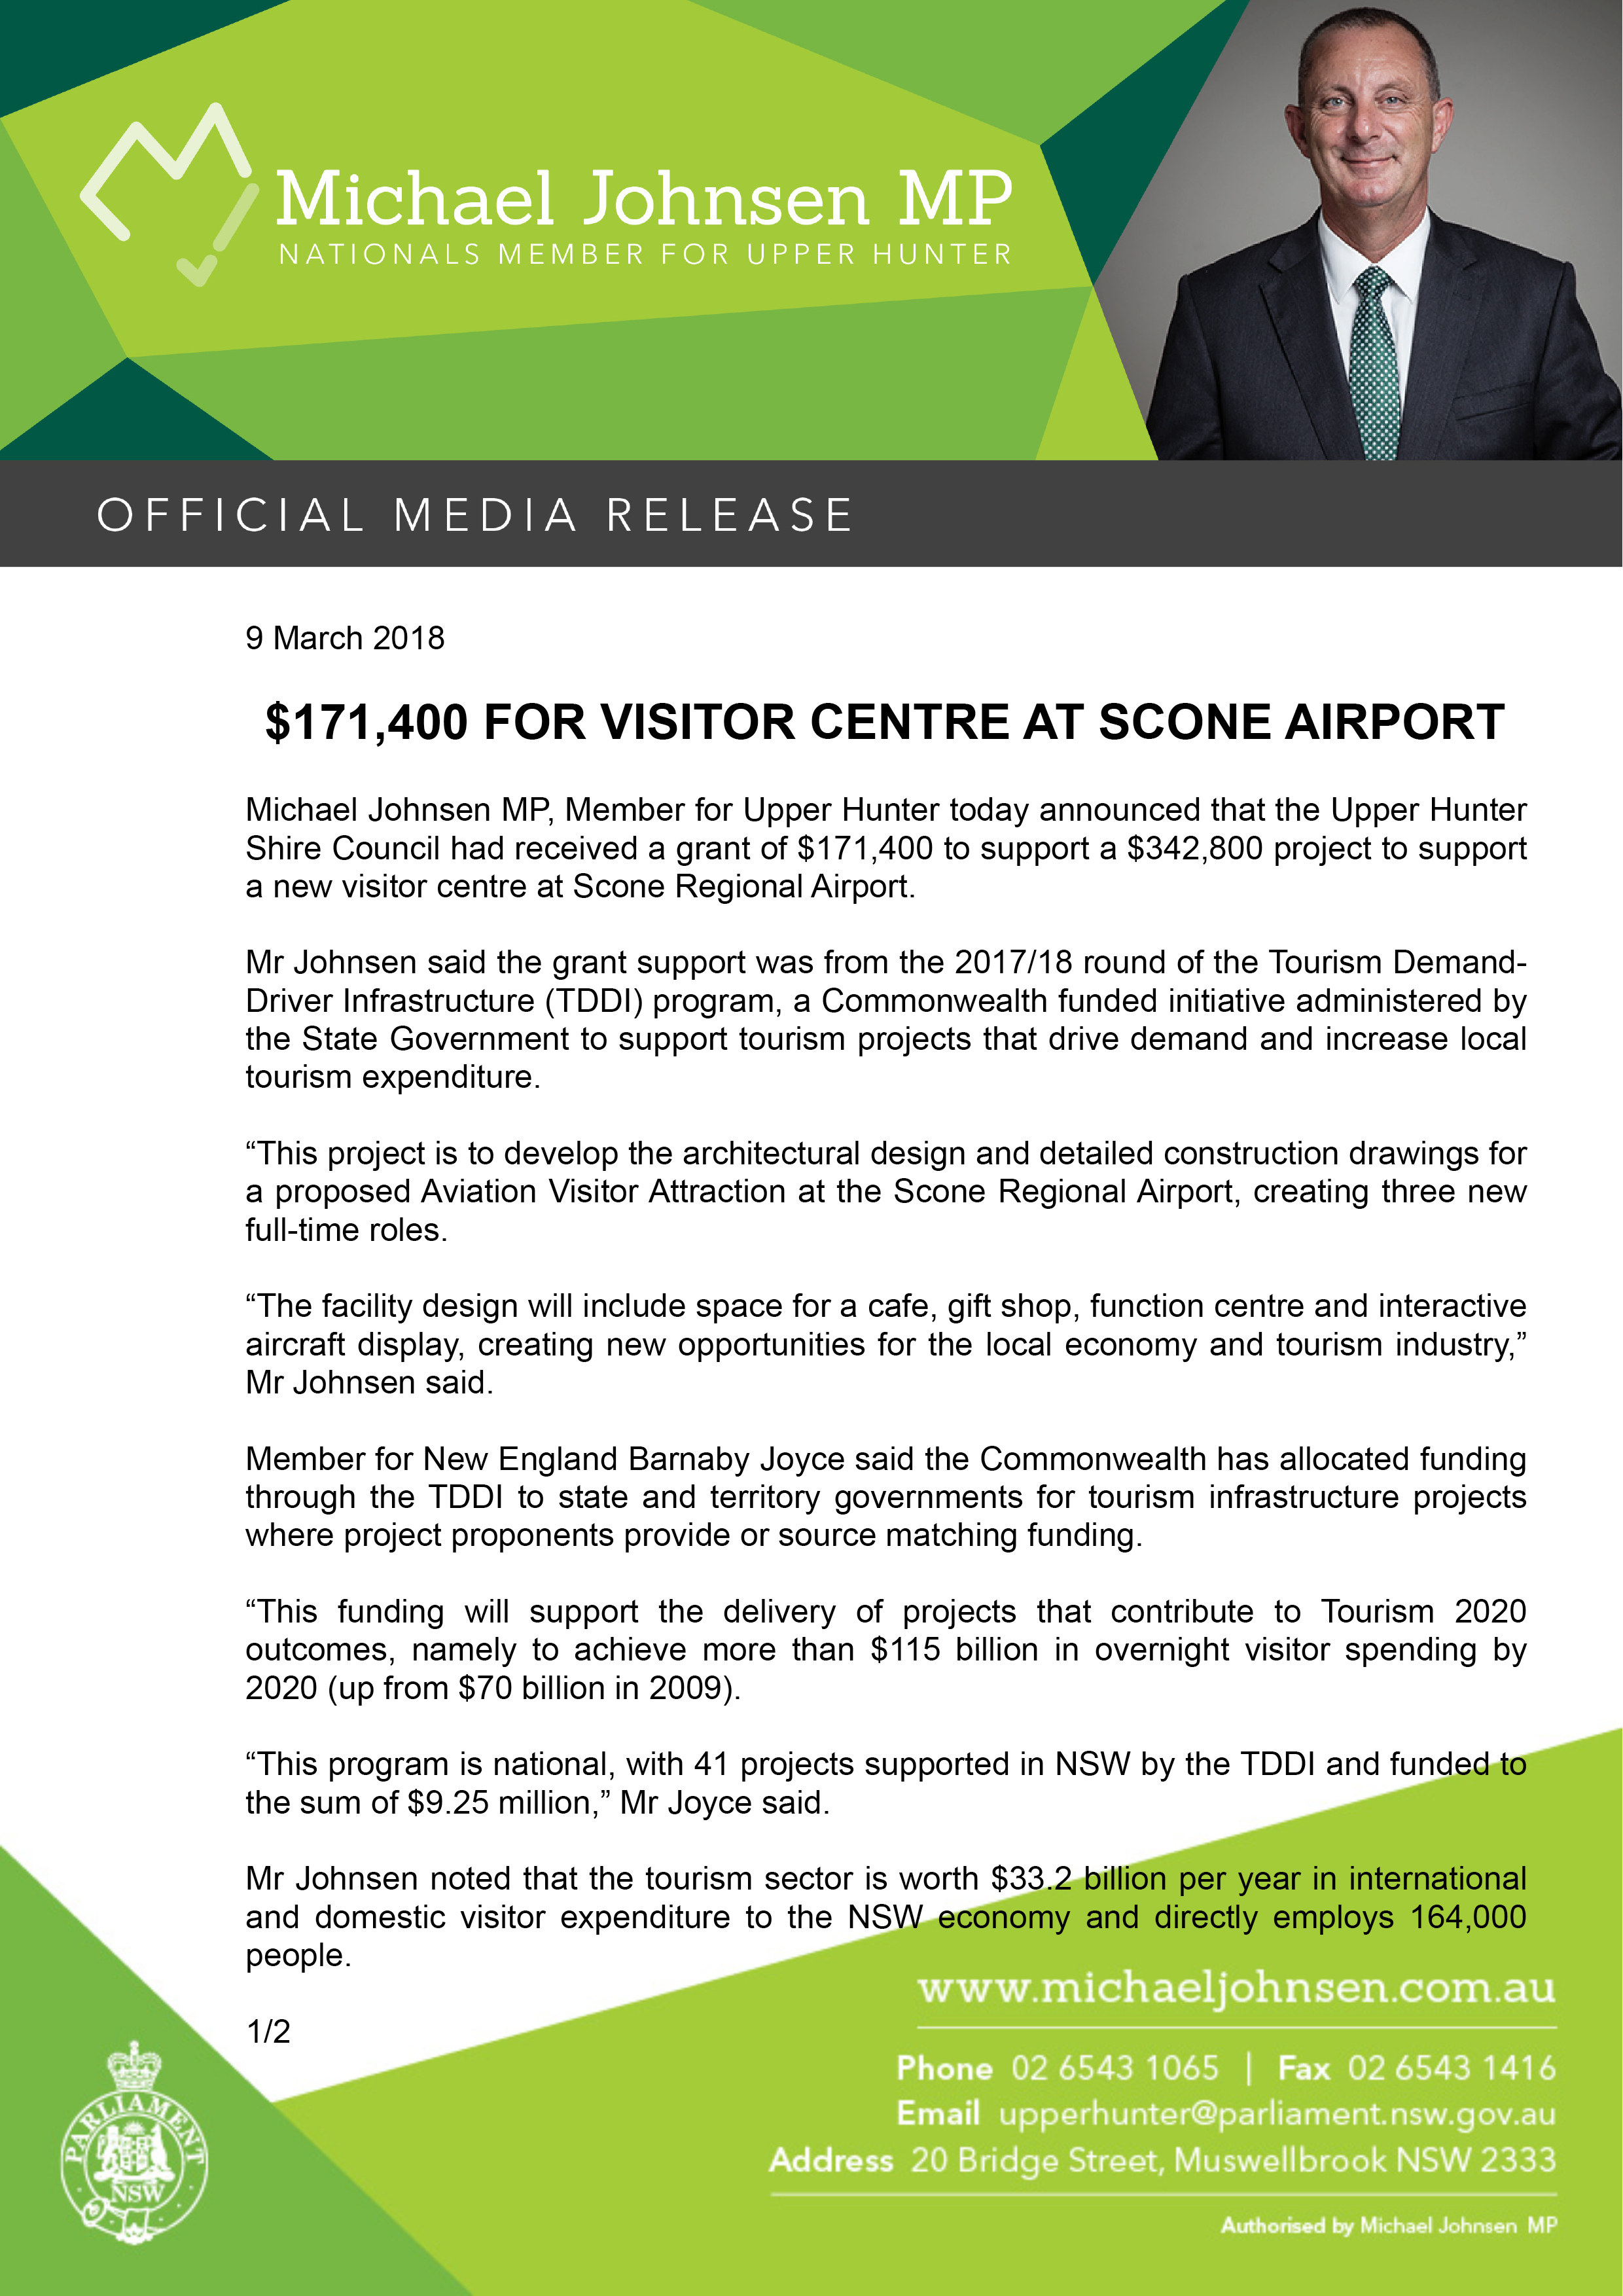 Michael Johnsen Media Release -$171,400 FOR VISITOR CENTRE AT SCONE AIRPORT.jpg